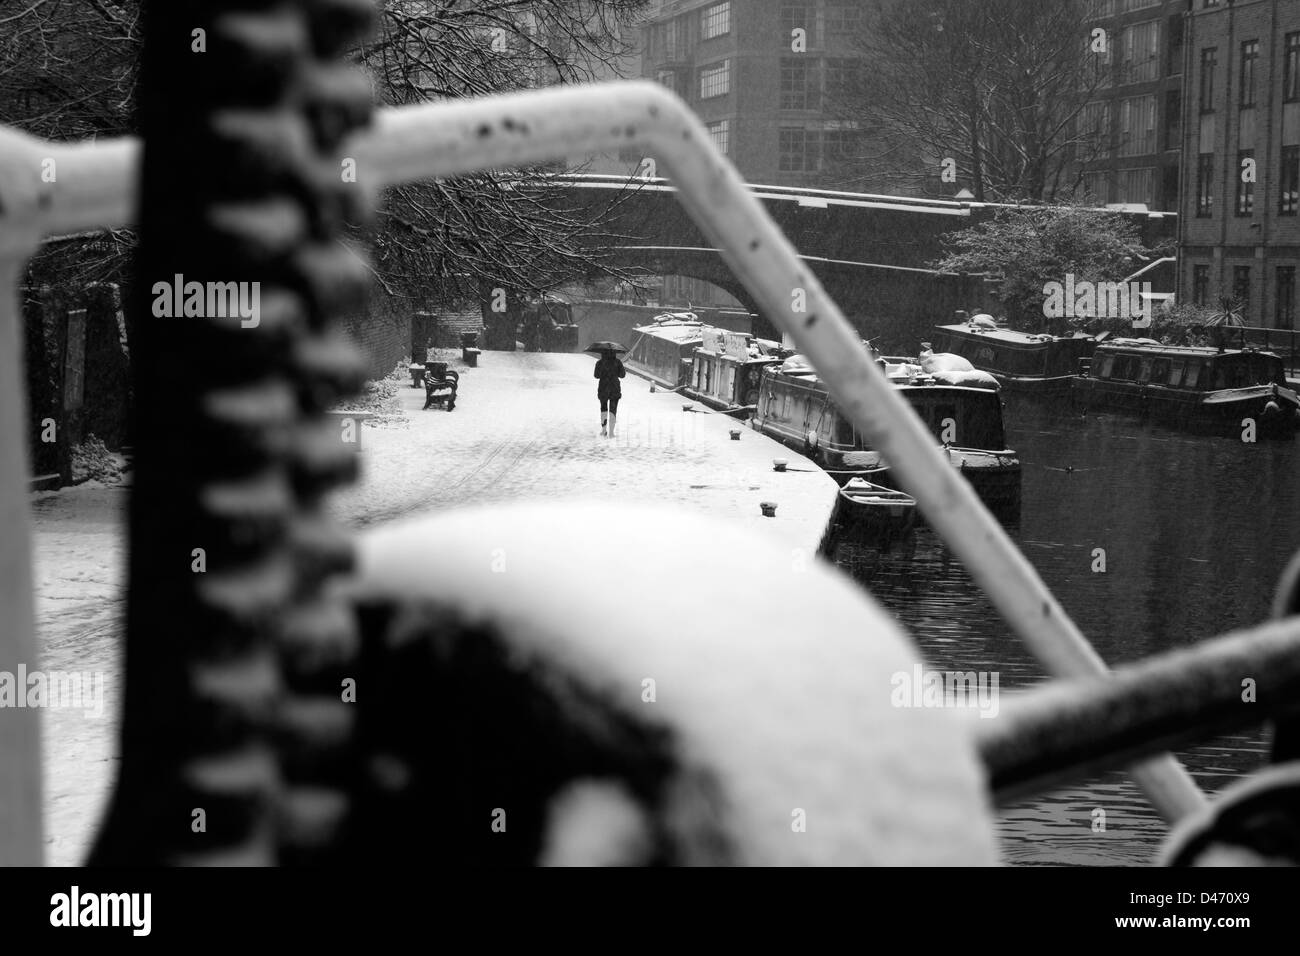 Snow on the Regent's Canal by City Road Basin, Islington, London, UK - Stock Image